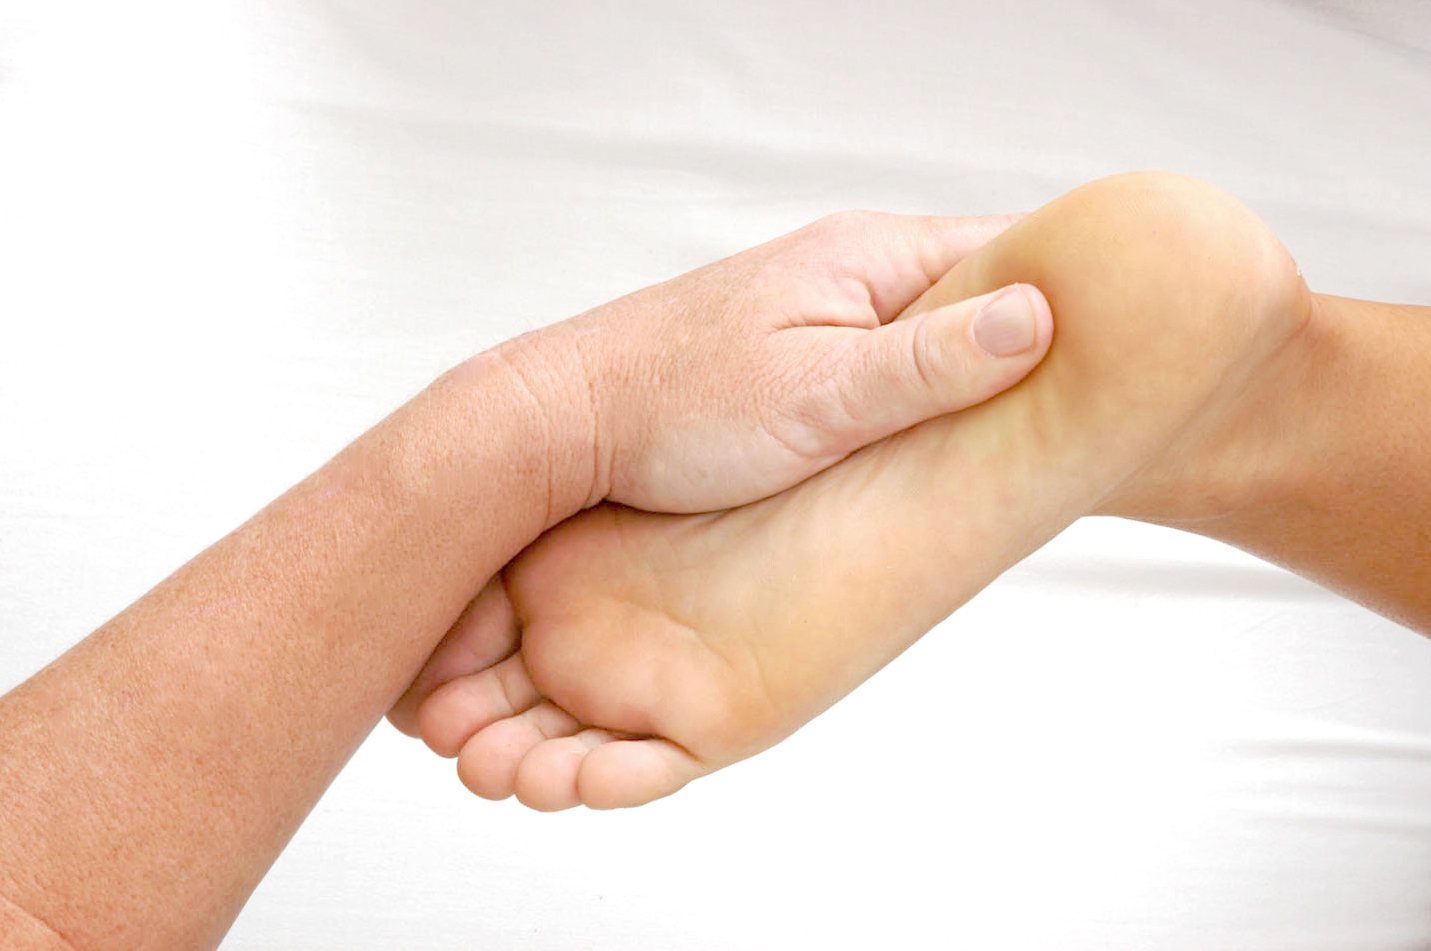 Rolfing-Structural-Integration-Treatment-Foot-B